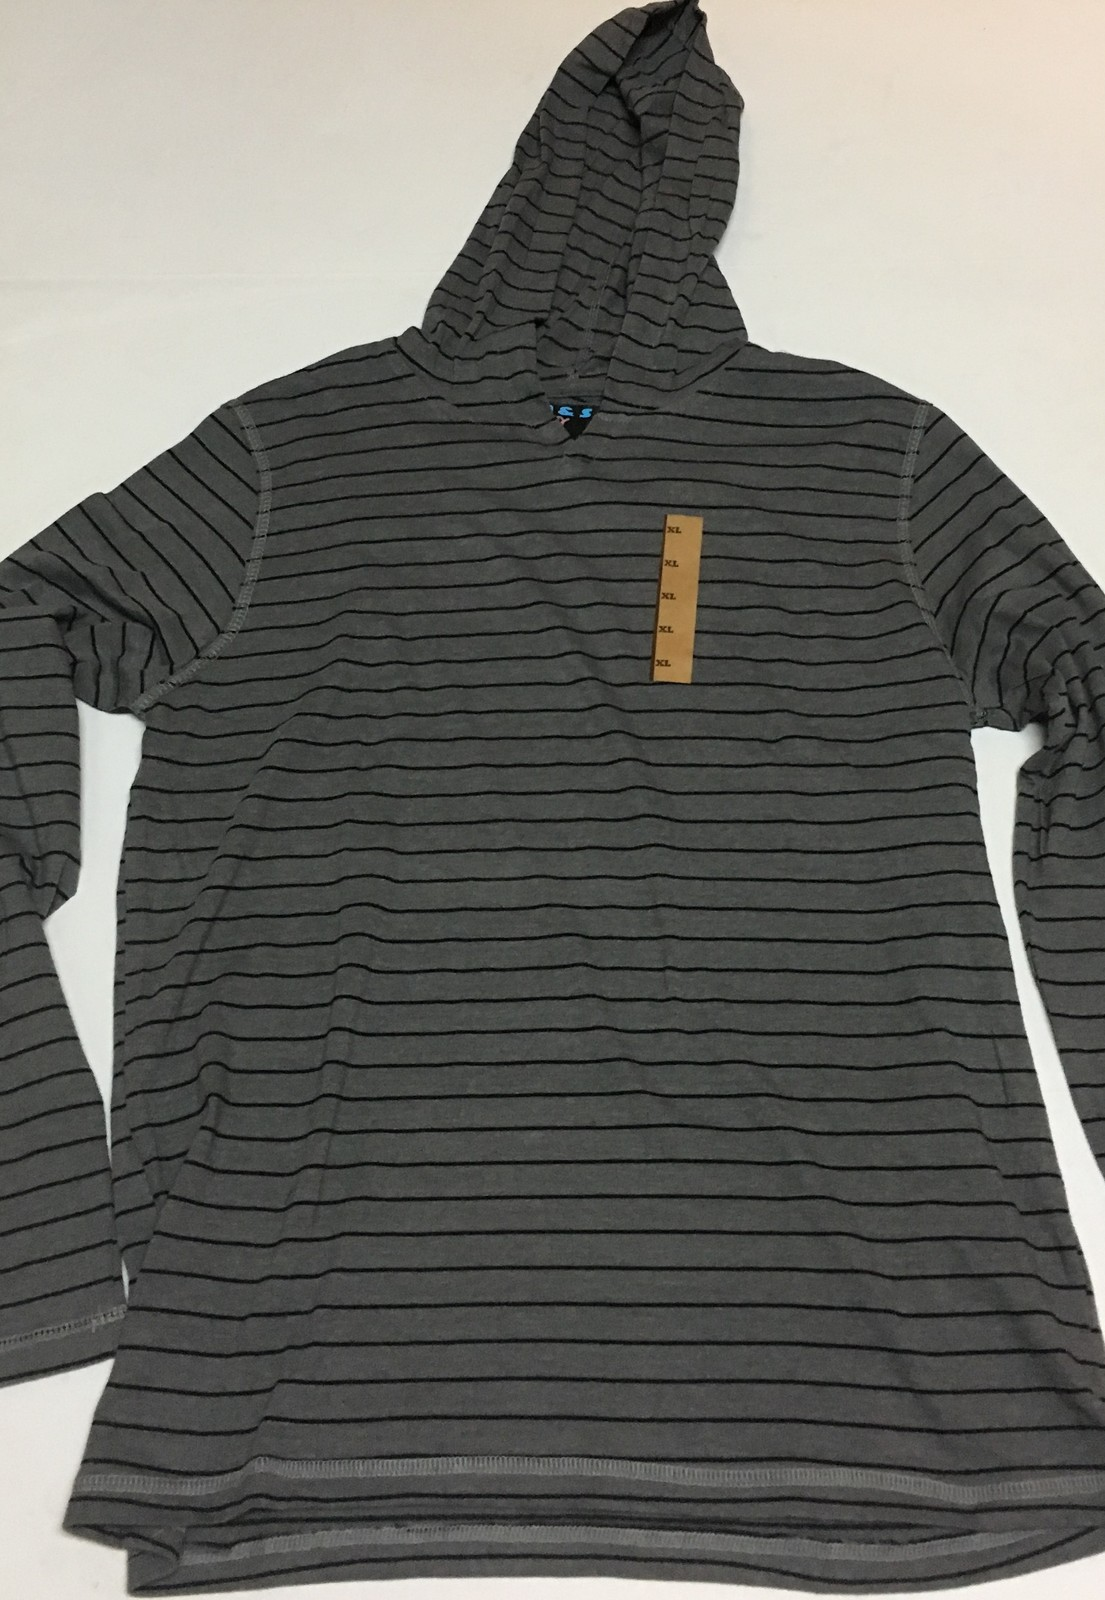 M&S Light Weight Hoodie Jersey Shirt Gray & Black Stripes NWT Sz XL